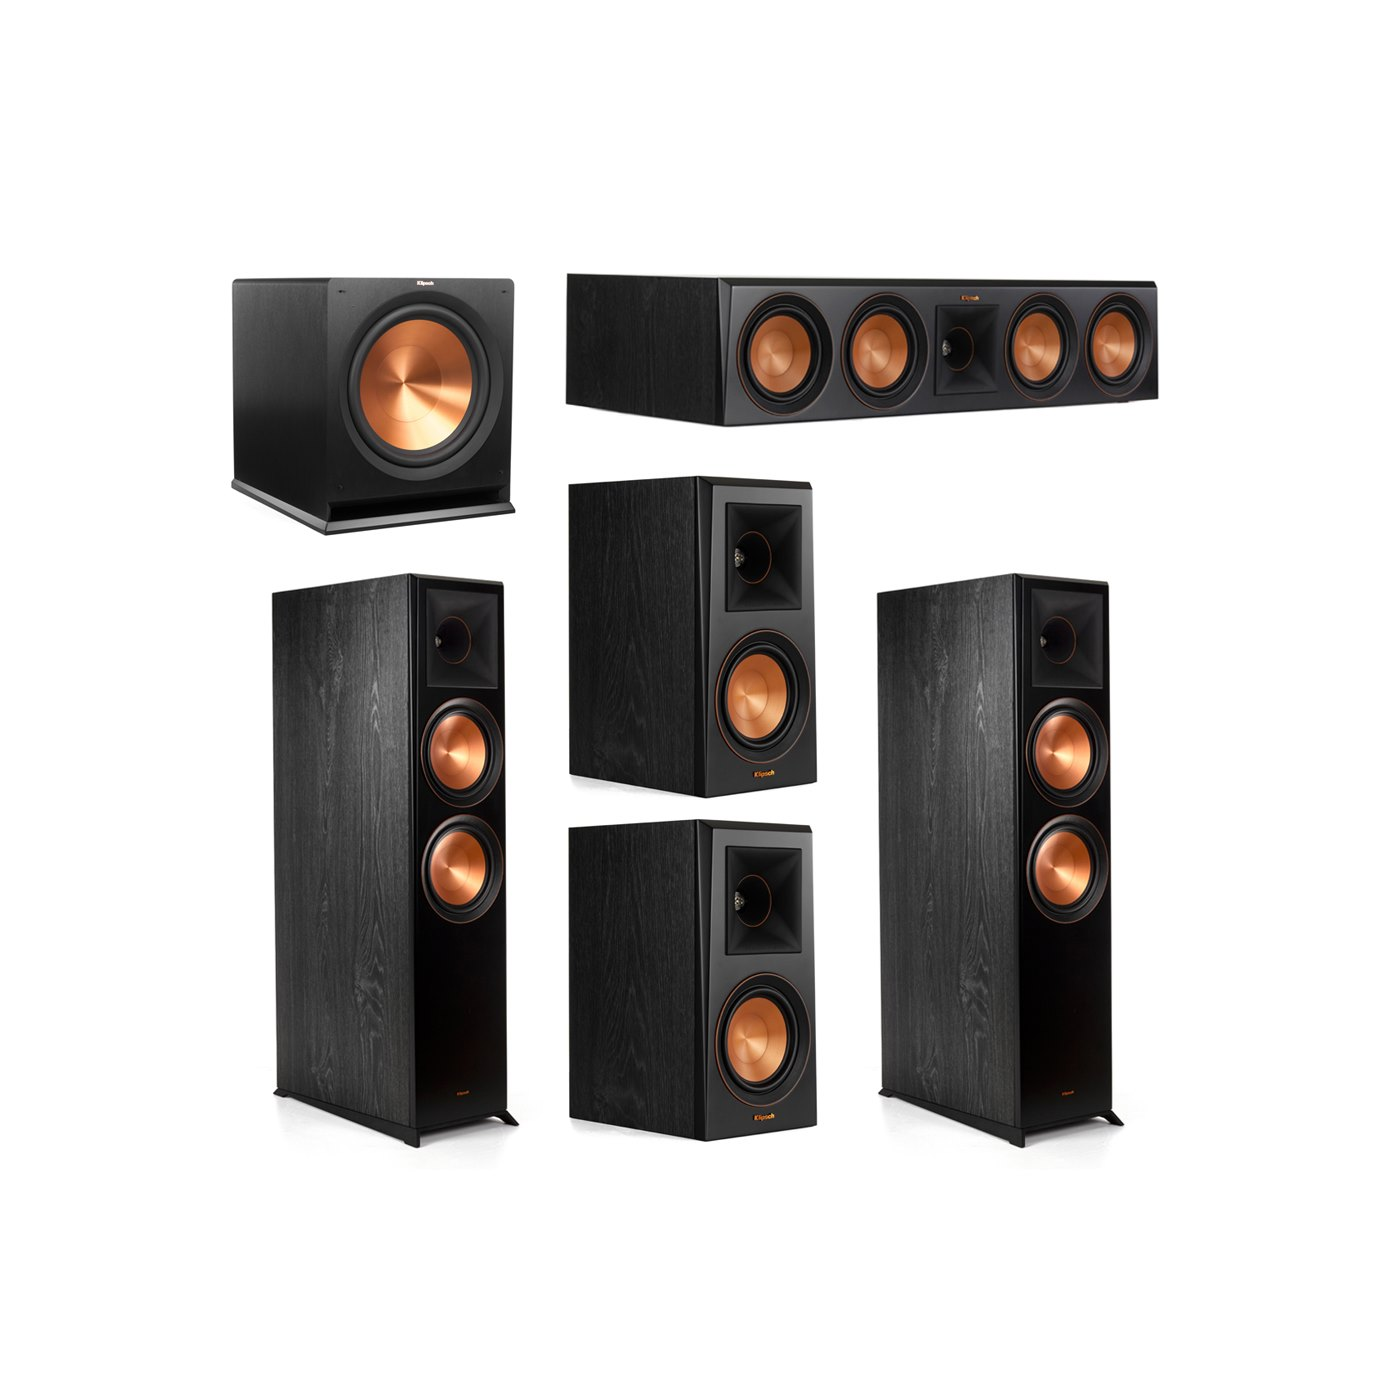 Klipsch 5.1.2 System - 2 RP-8060FA Dolby Atmos Speakers, 1 RP-504C, 2 RP-500M Speakers, 1 R-115SW